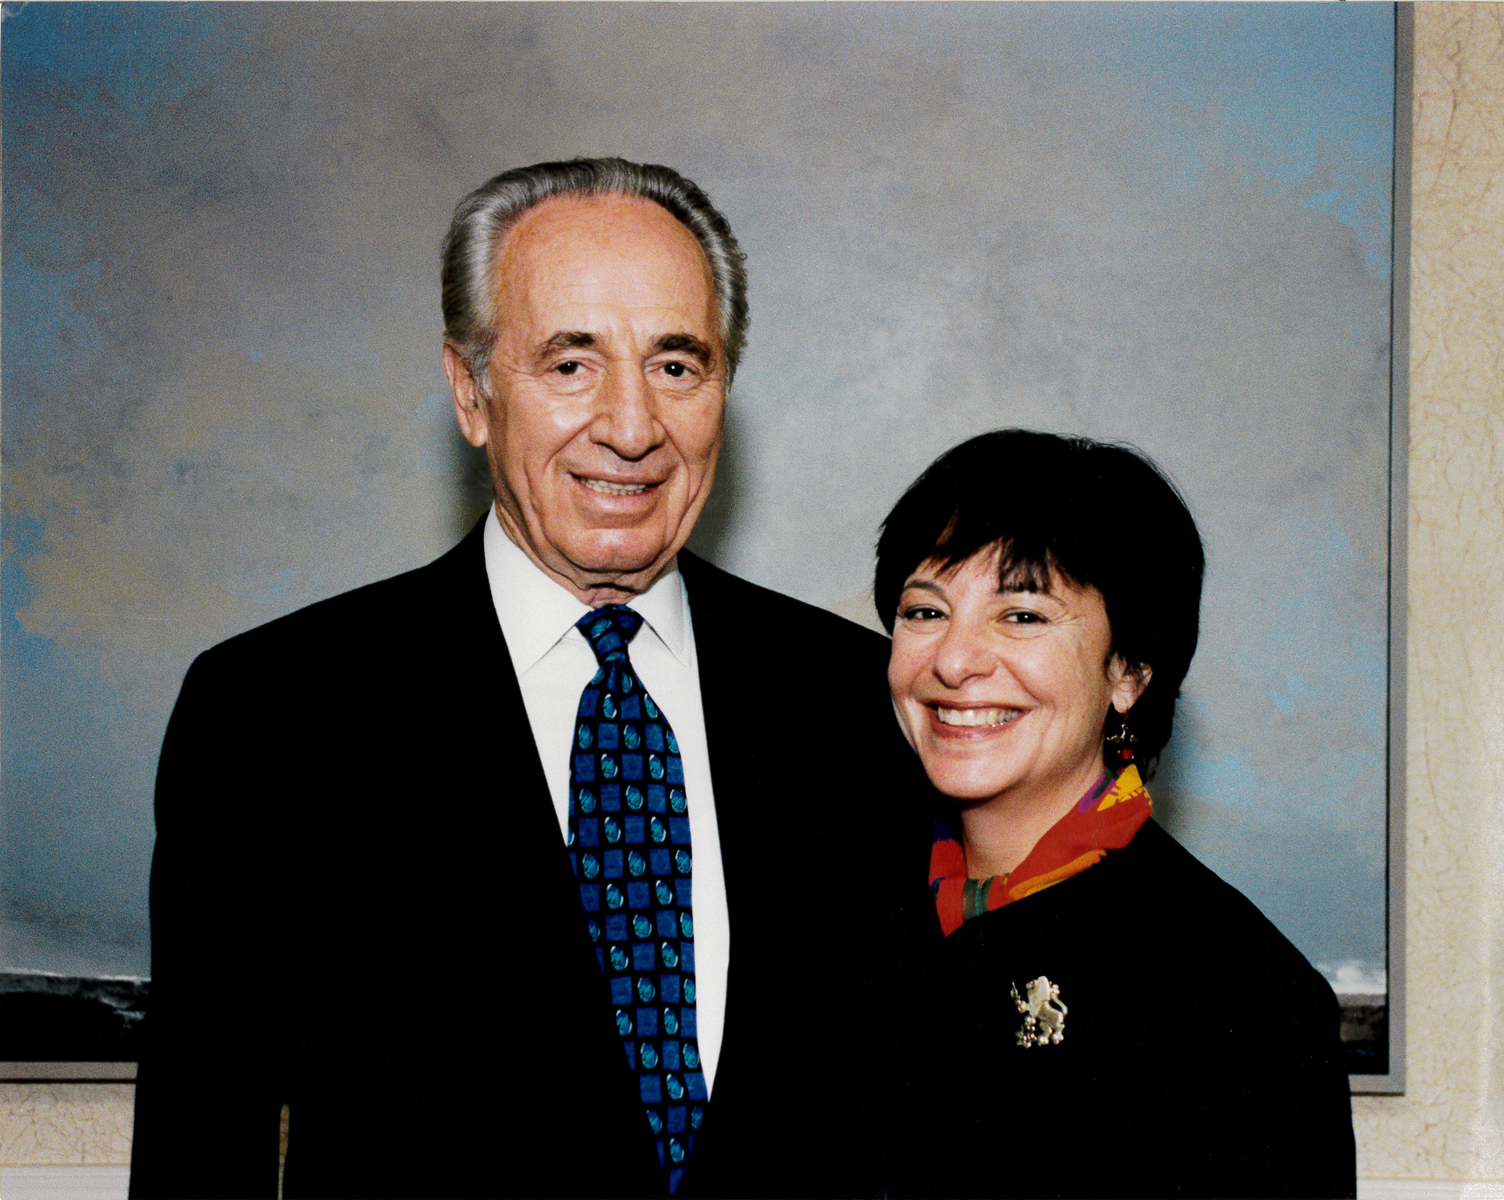 Michele Rosen with the former Israeli Prime Minister and President, Shimon Peres.